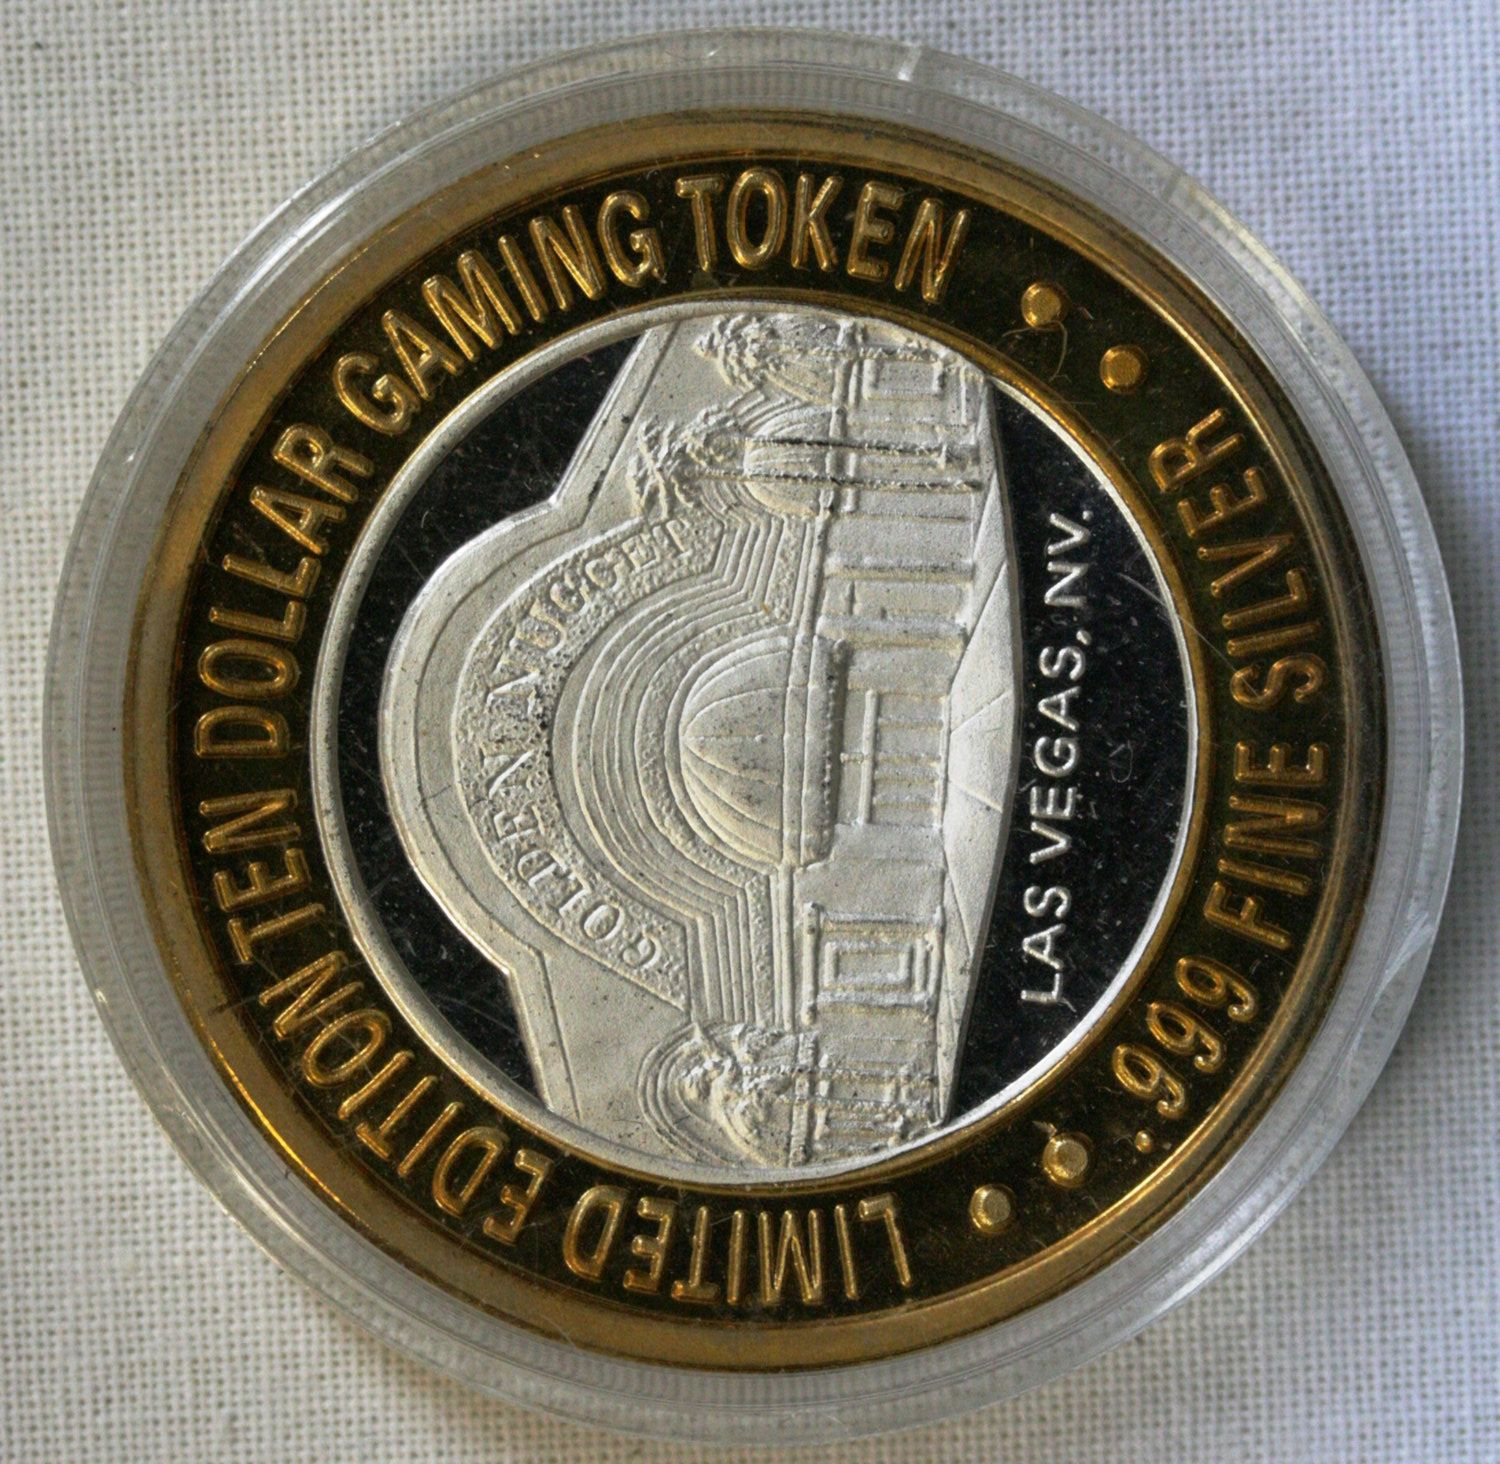 Casino silver coin islandview casino resort